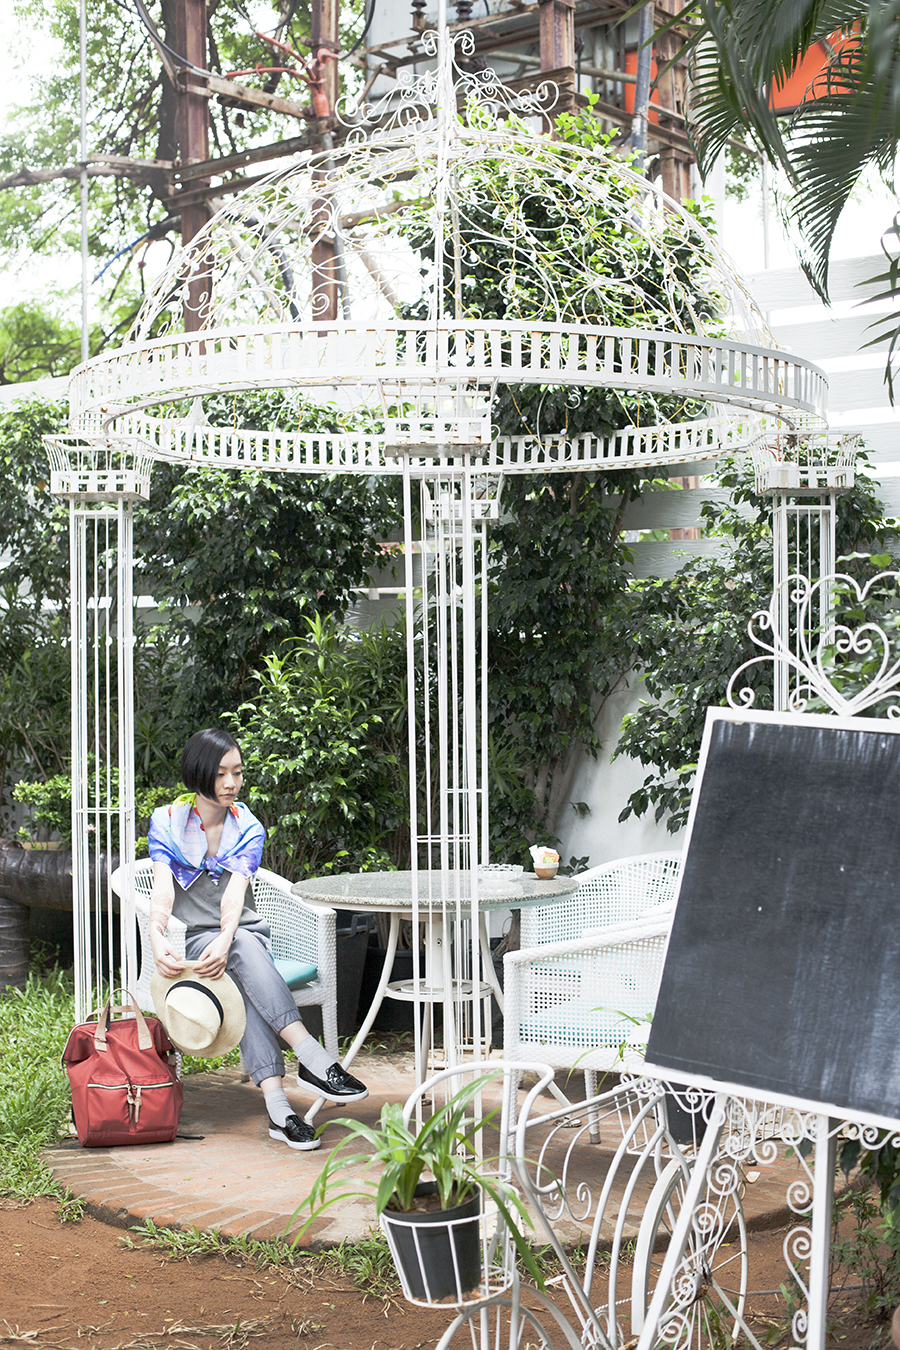 Lounging at the garden pavillion at The Brew Room, Chennai India.